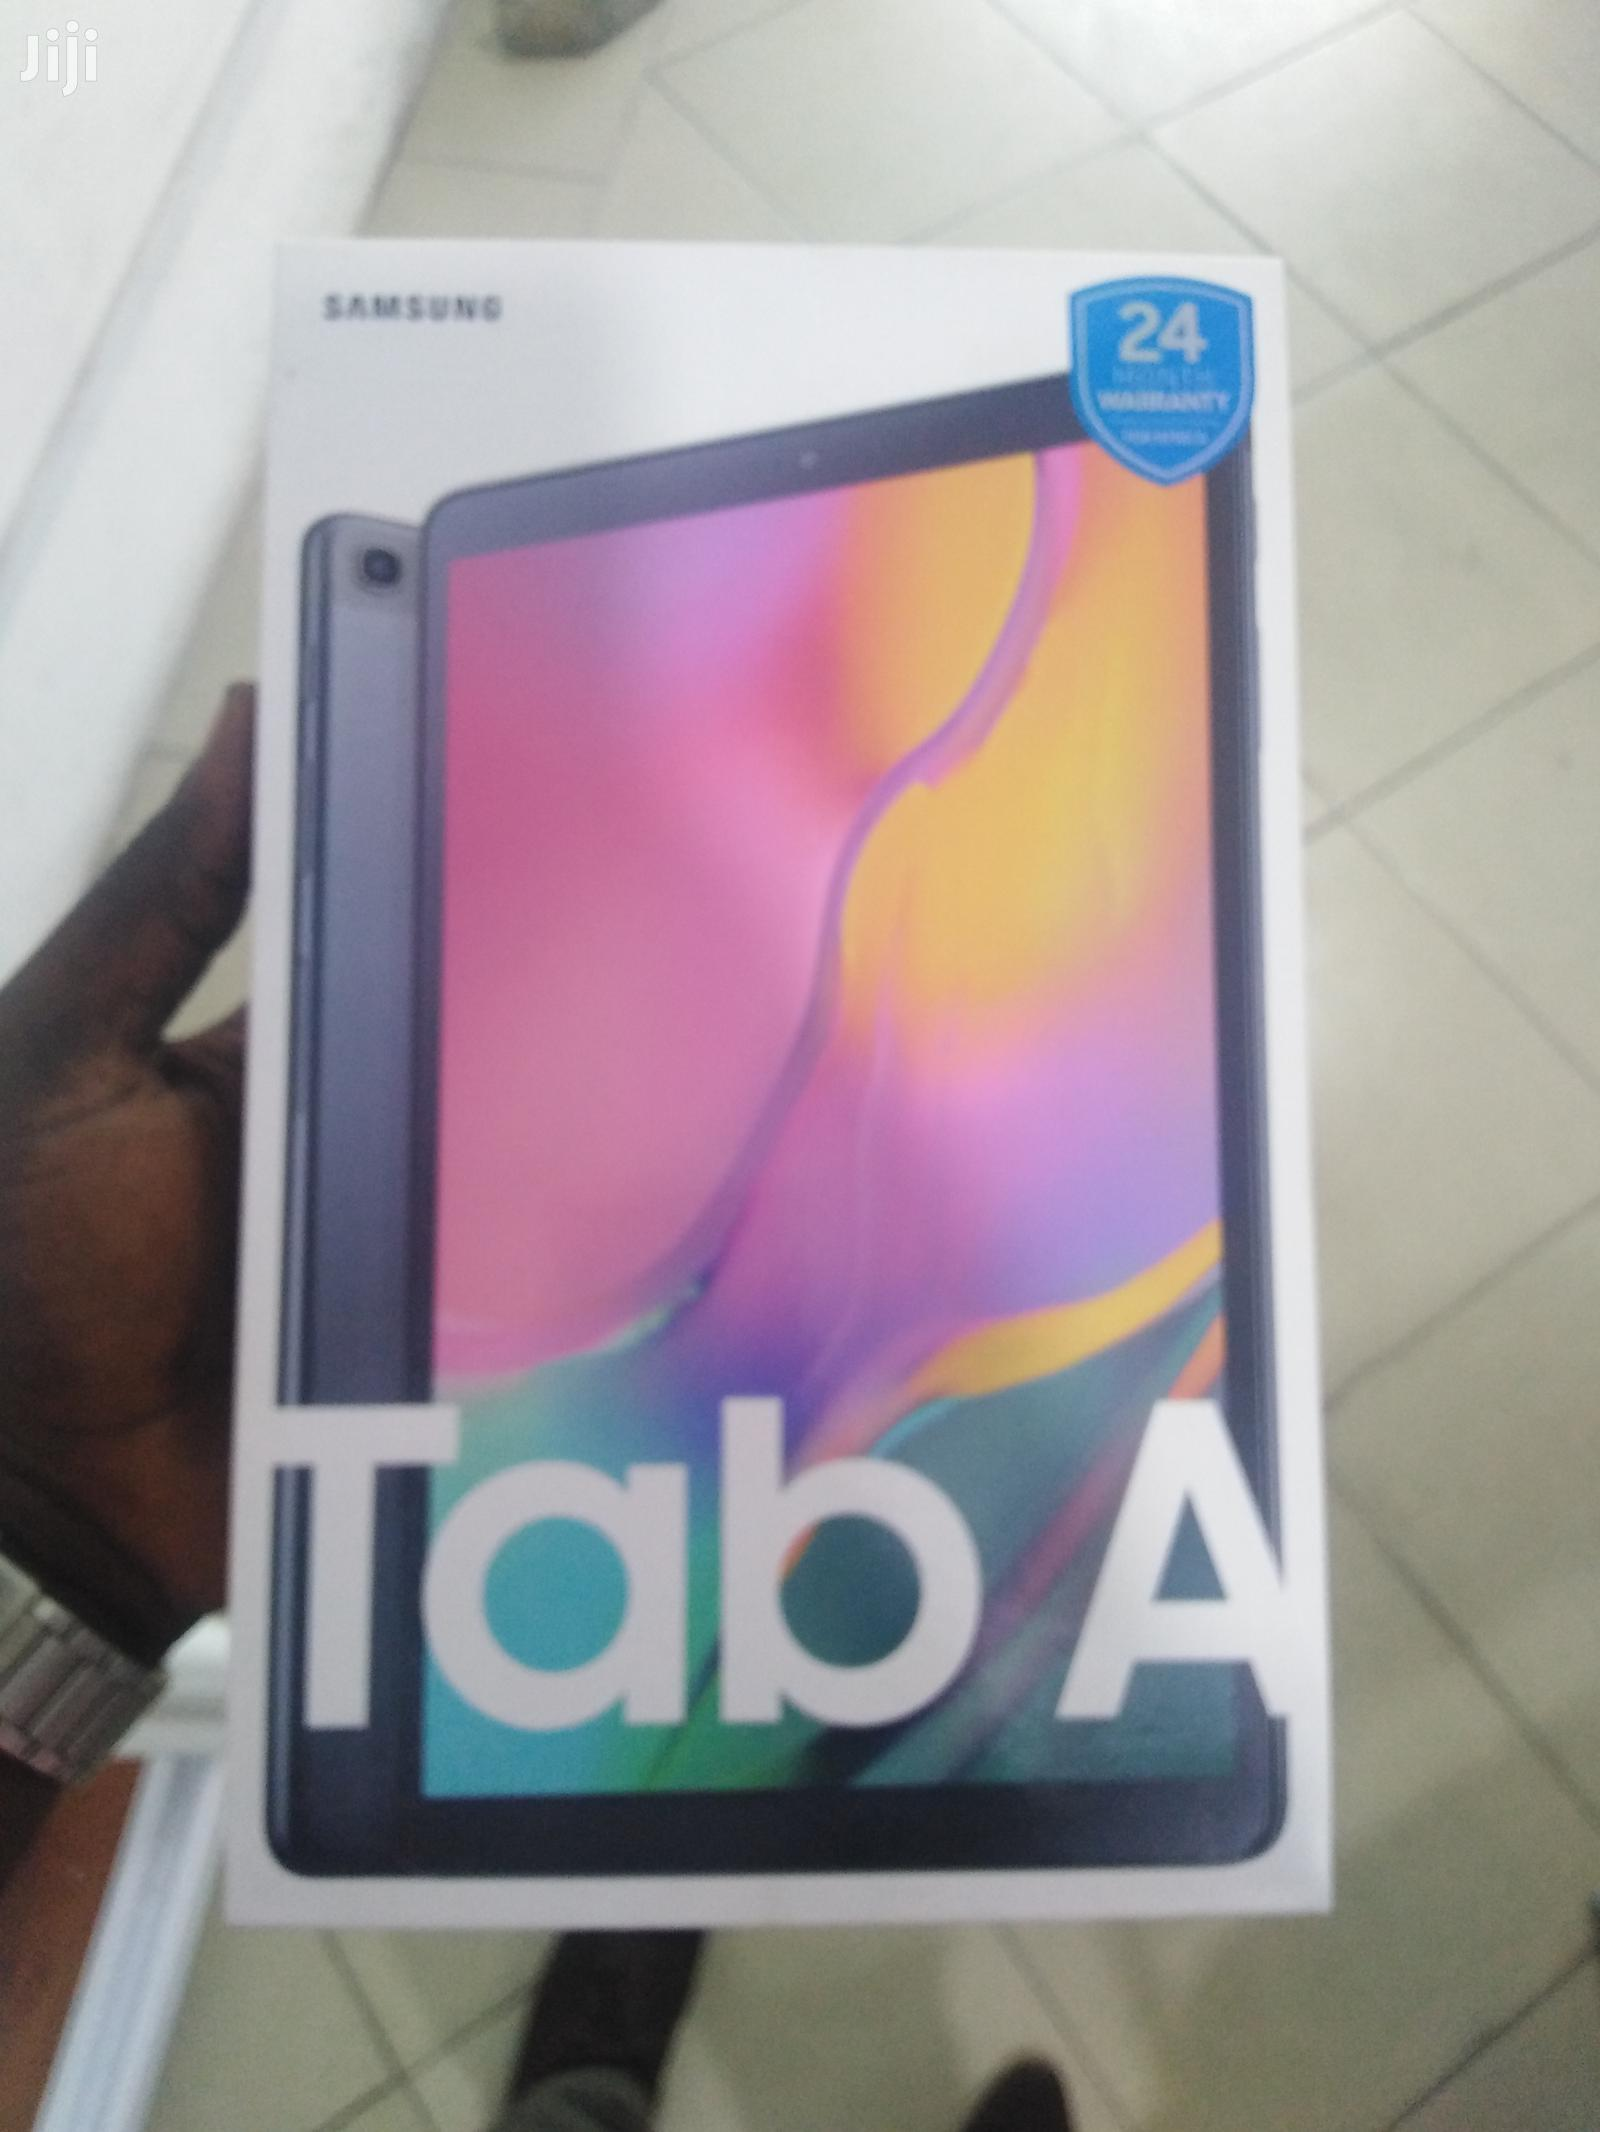 New Samsung Galaxy Tab A 10.1 32 GB